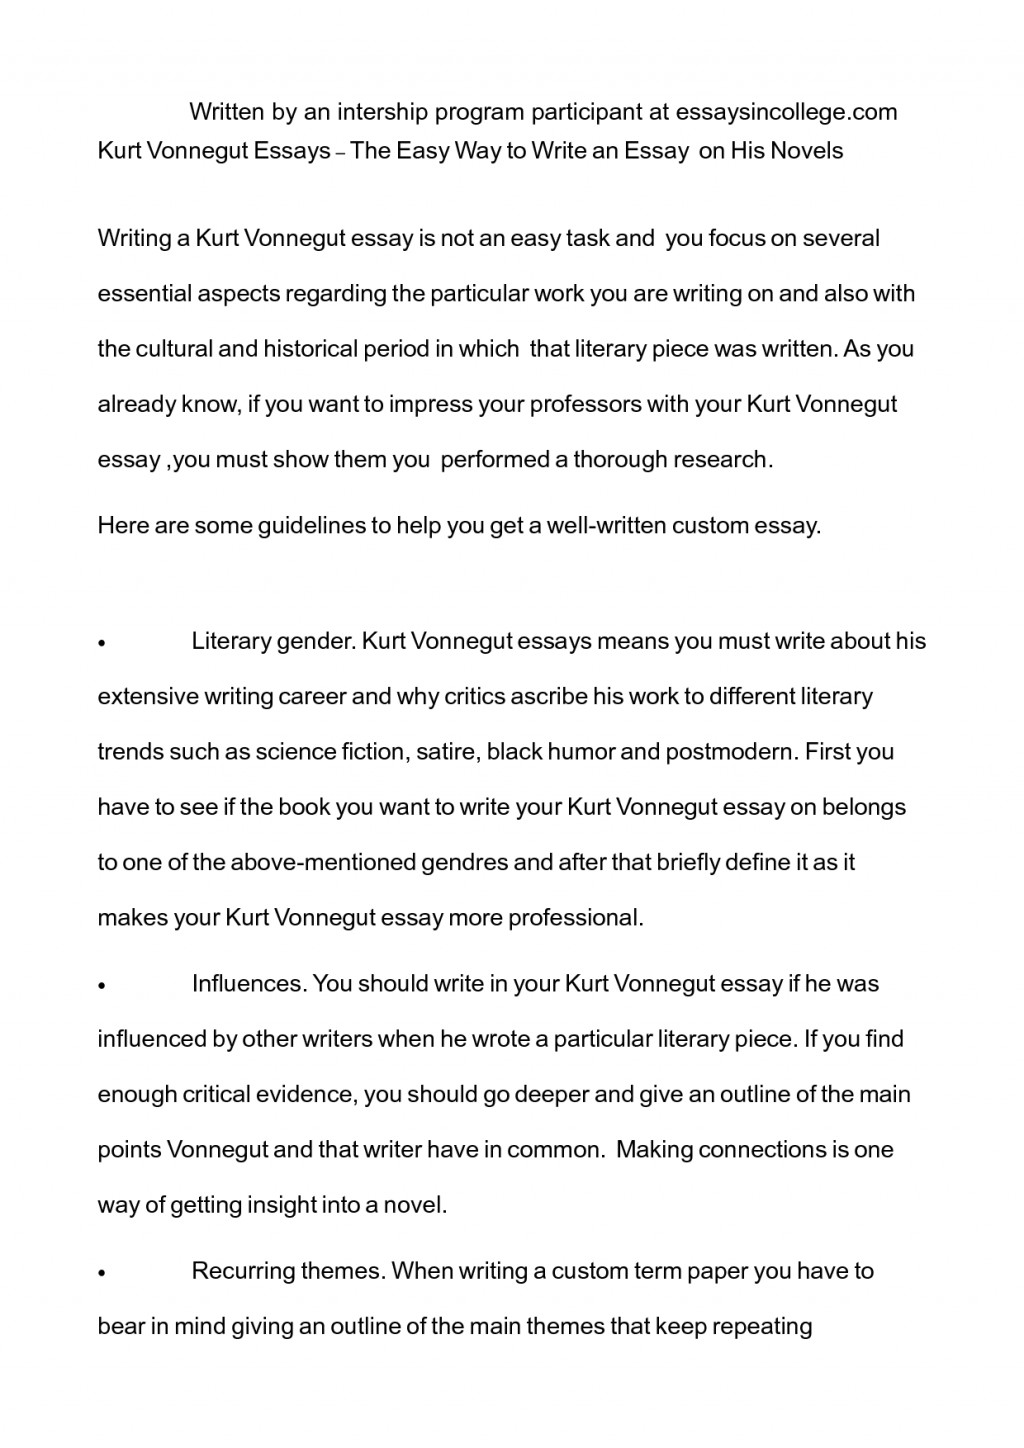 001 Easy Essay Writing Ujolpknqnj Marvelous Examples Ielts Tips Task 2 Topics Large